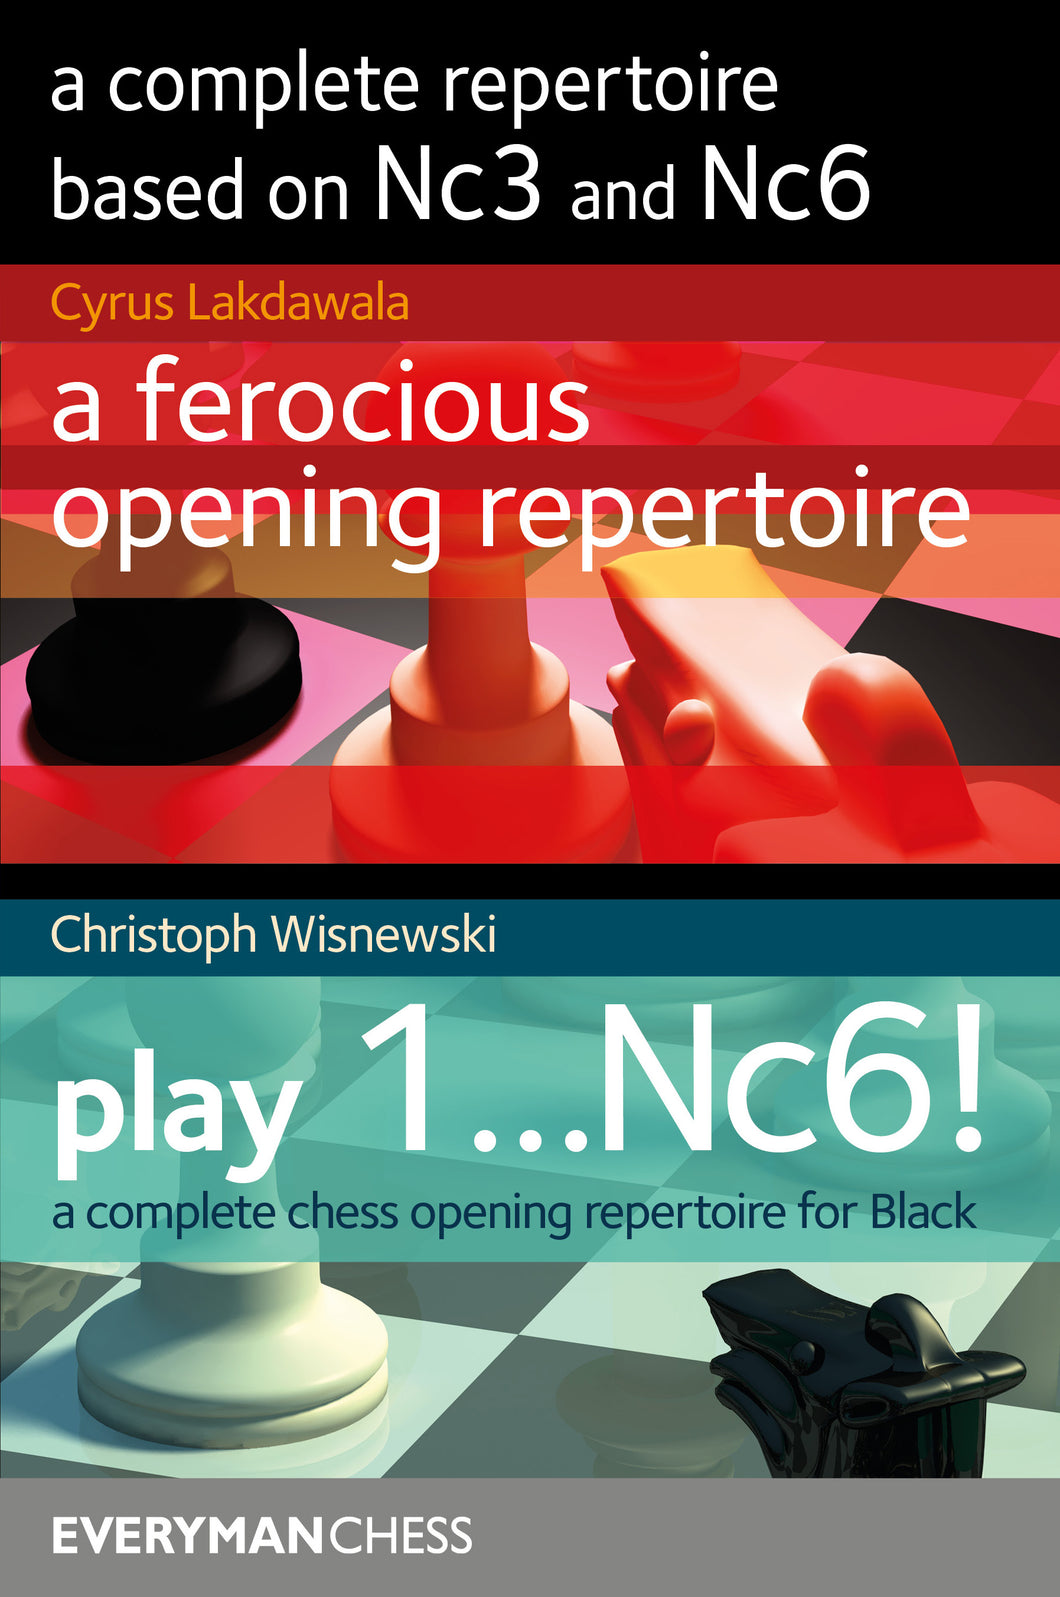 A complete repertoire based on Nc3 and Nc6